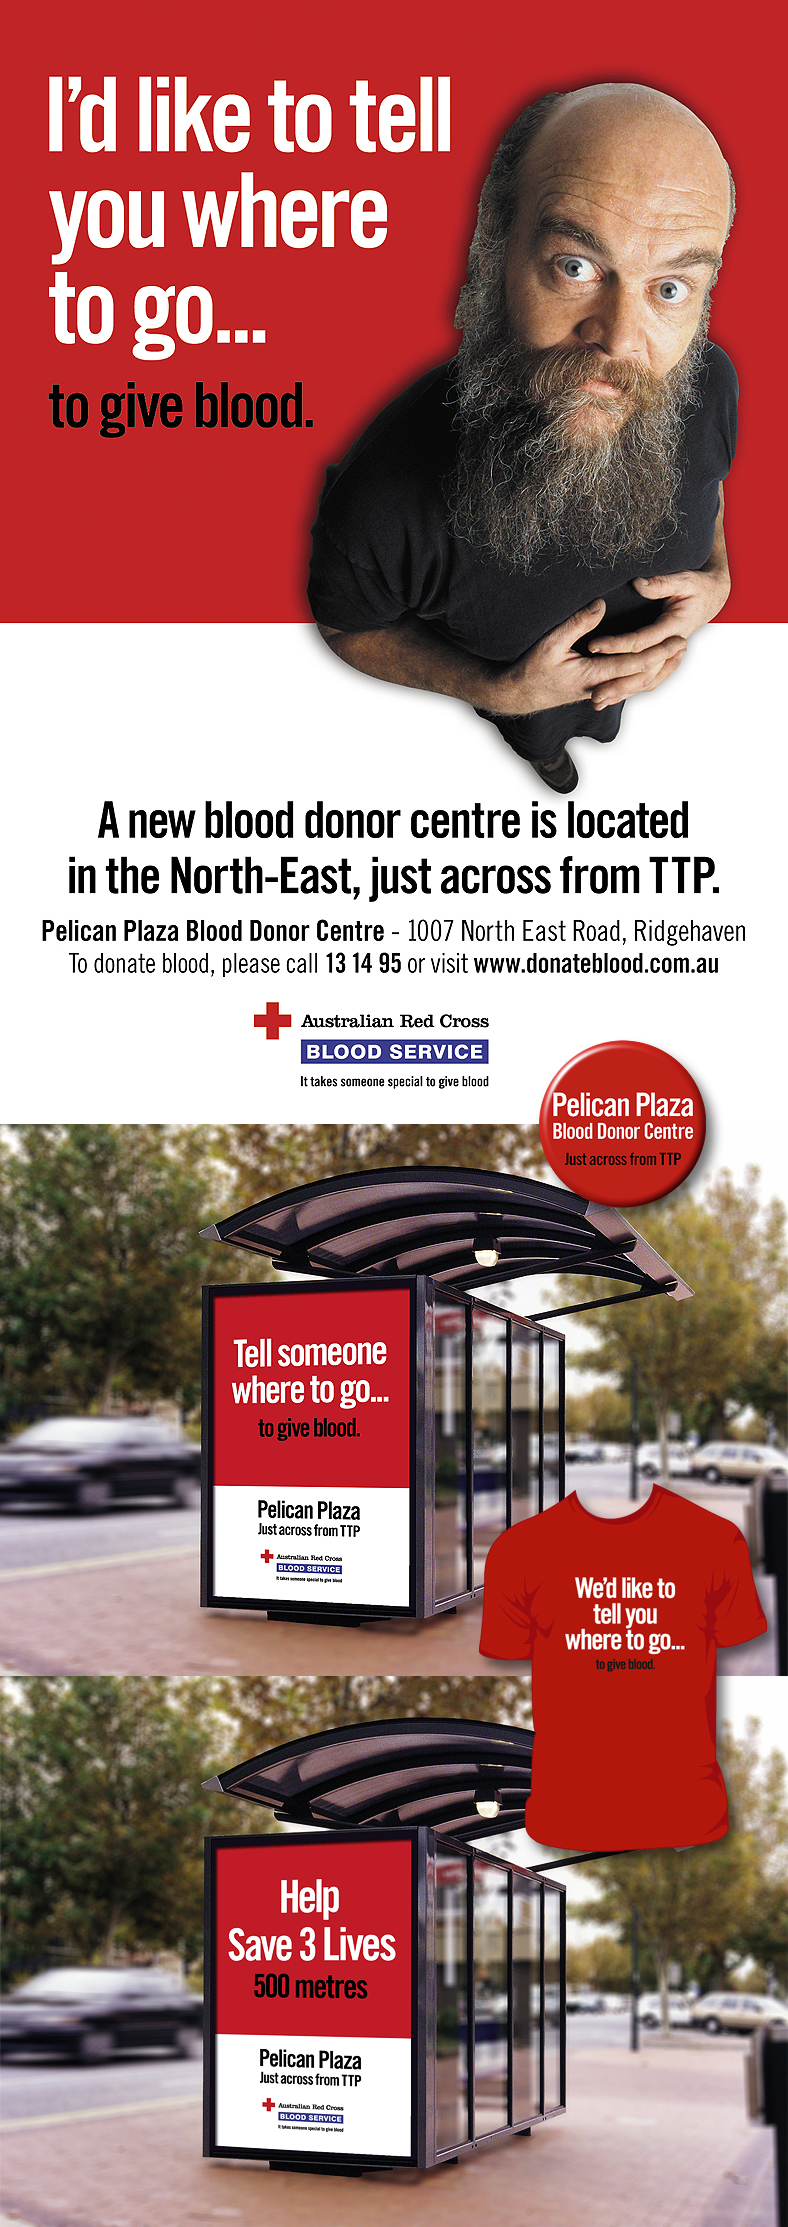 NrG Advertising Australian Red Cross Blood Service Launch Campaign